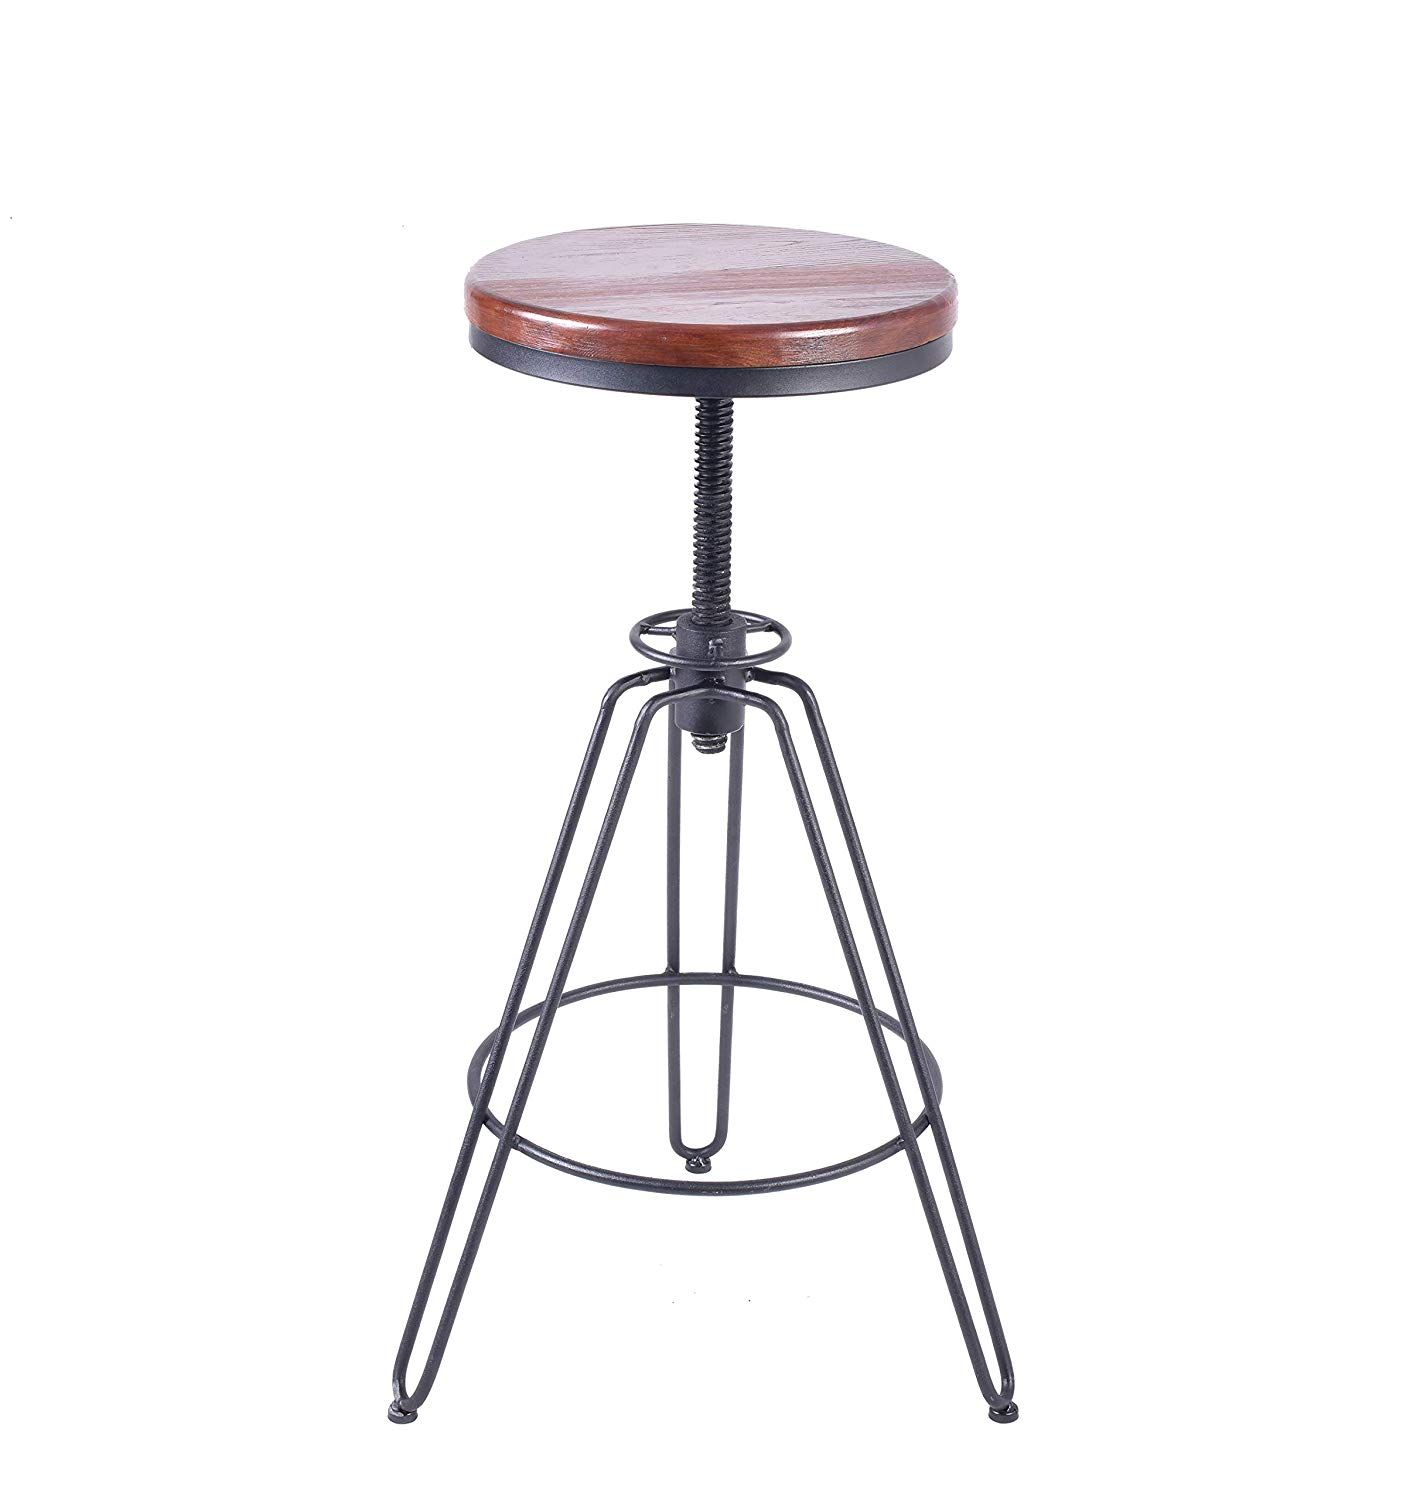 Lokkhan Vintage Industrial Bar Stools Ash Wood Metal Bar Stool